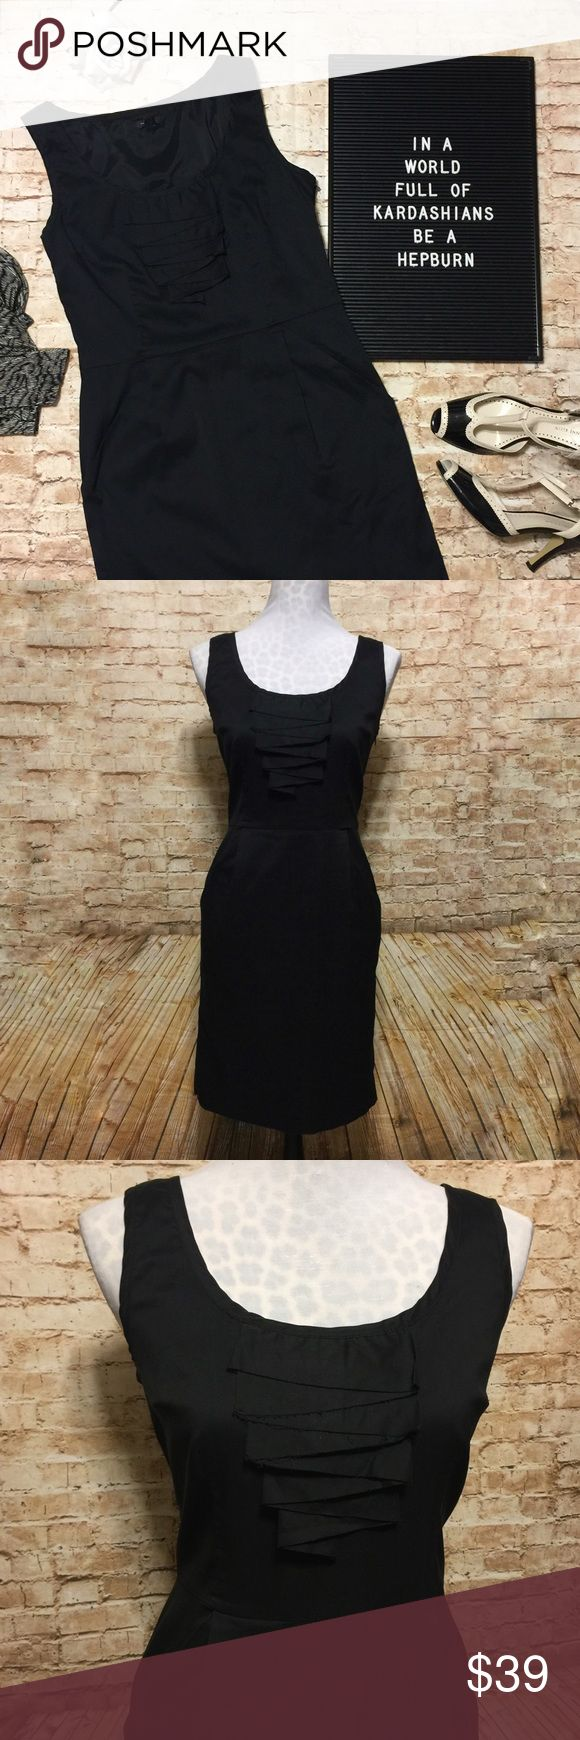 """Ann Taylor Classic Little Black Dress Beautiful LBD by Ann Taylor is the epitome of classy! Solid black with a tailored fit. Adorable raw-edge Ruffle Down the front. Side zipper. Pockets at each hip. Princess seaming and a pintucks at hips for a perfect silhouette. Defined waist. Modest round neckline. Flawless condition.   Measurements lying flat: • Bust: 17.5"""" across from armpit to armpit  • Waist: 15"""" at natural waist • Length: 37"""" Ann Taylor Dresses Midi"""